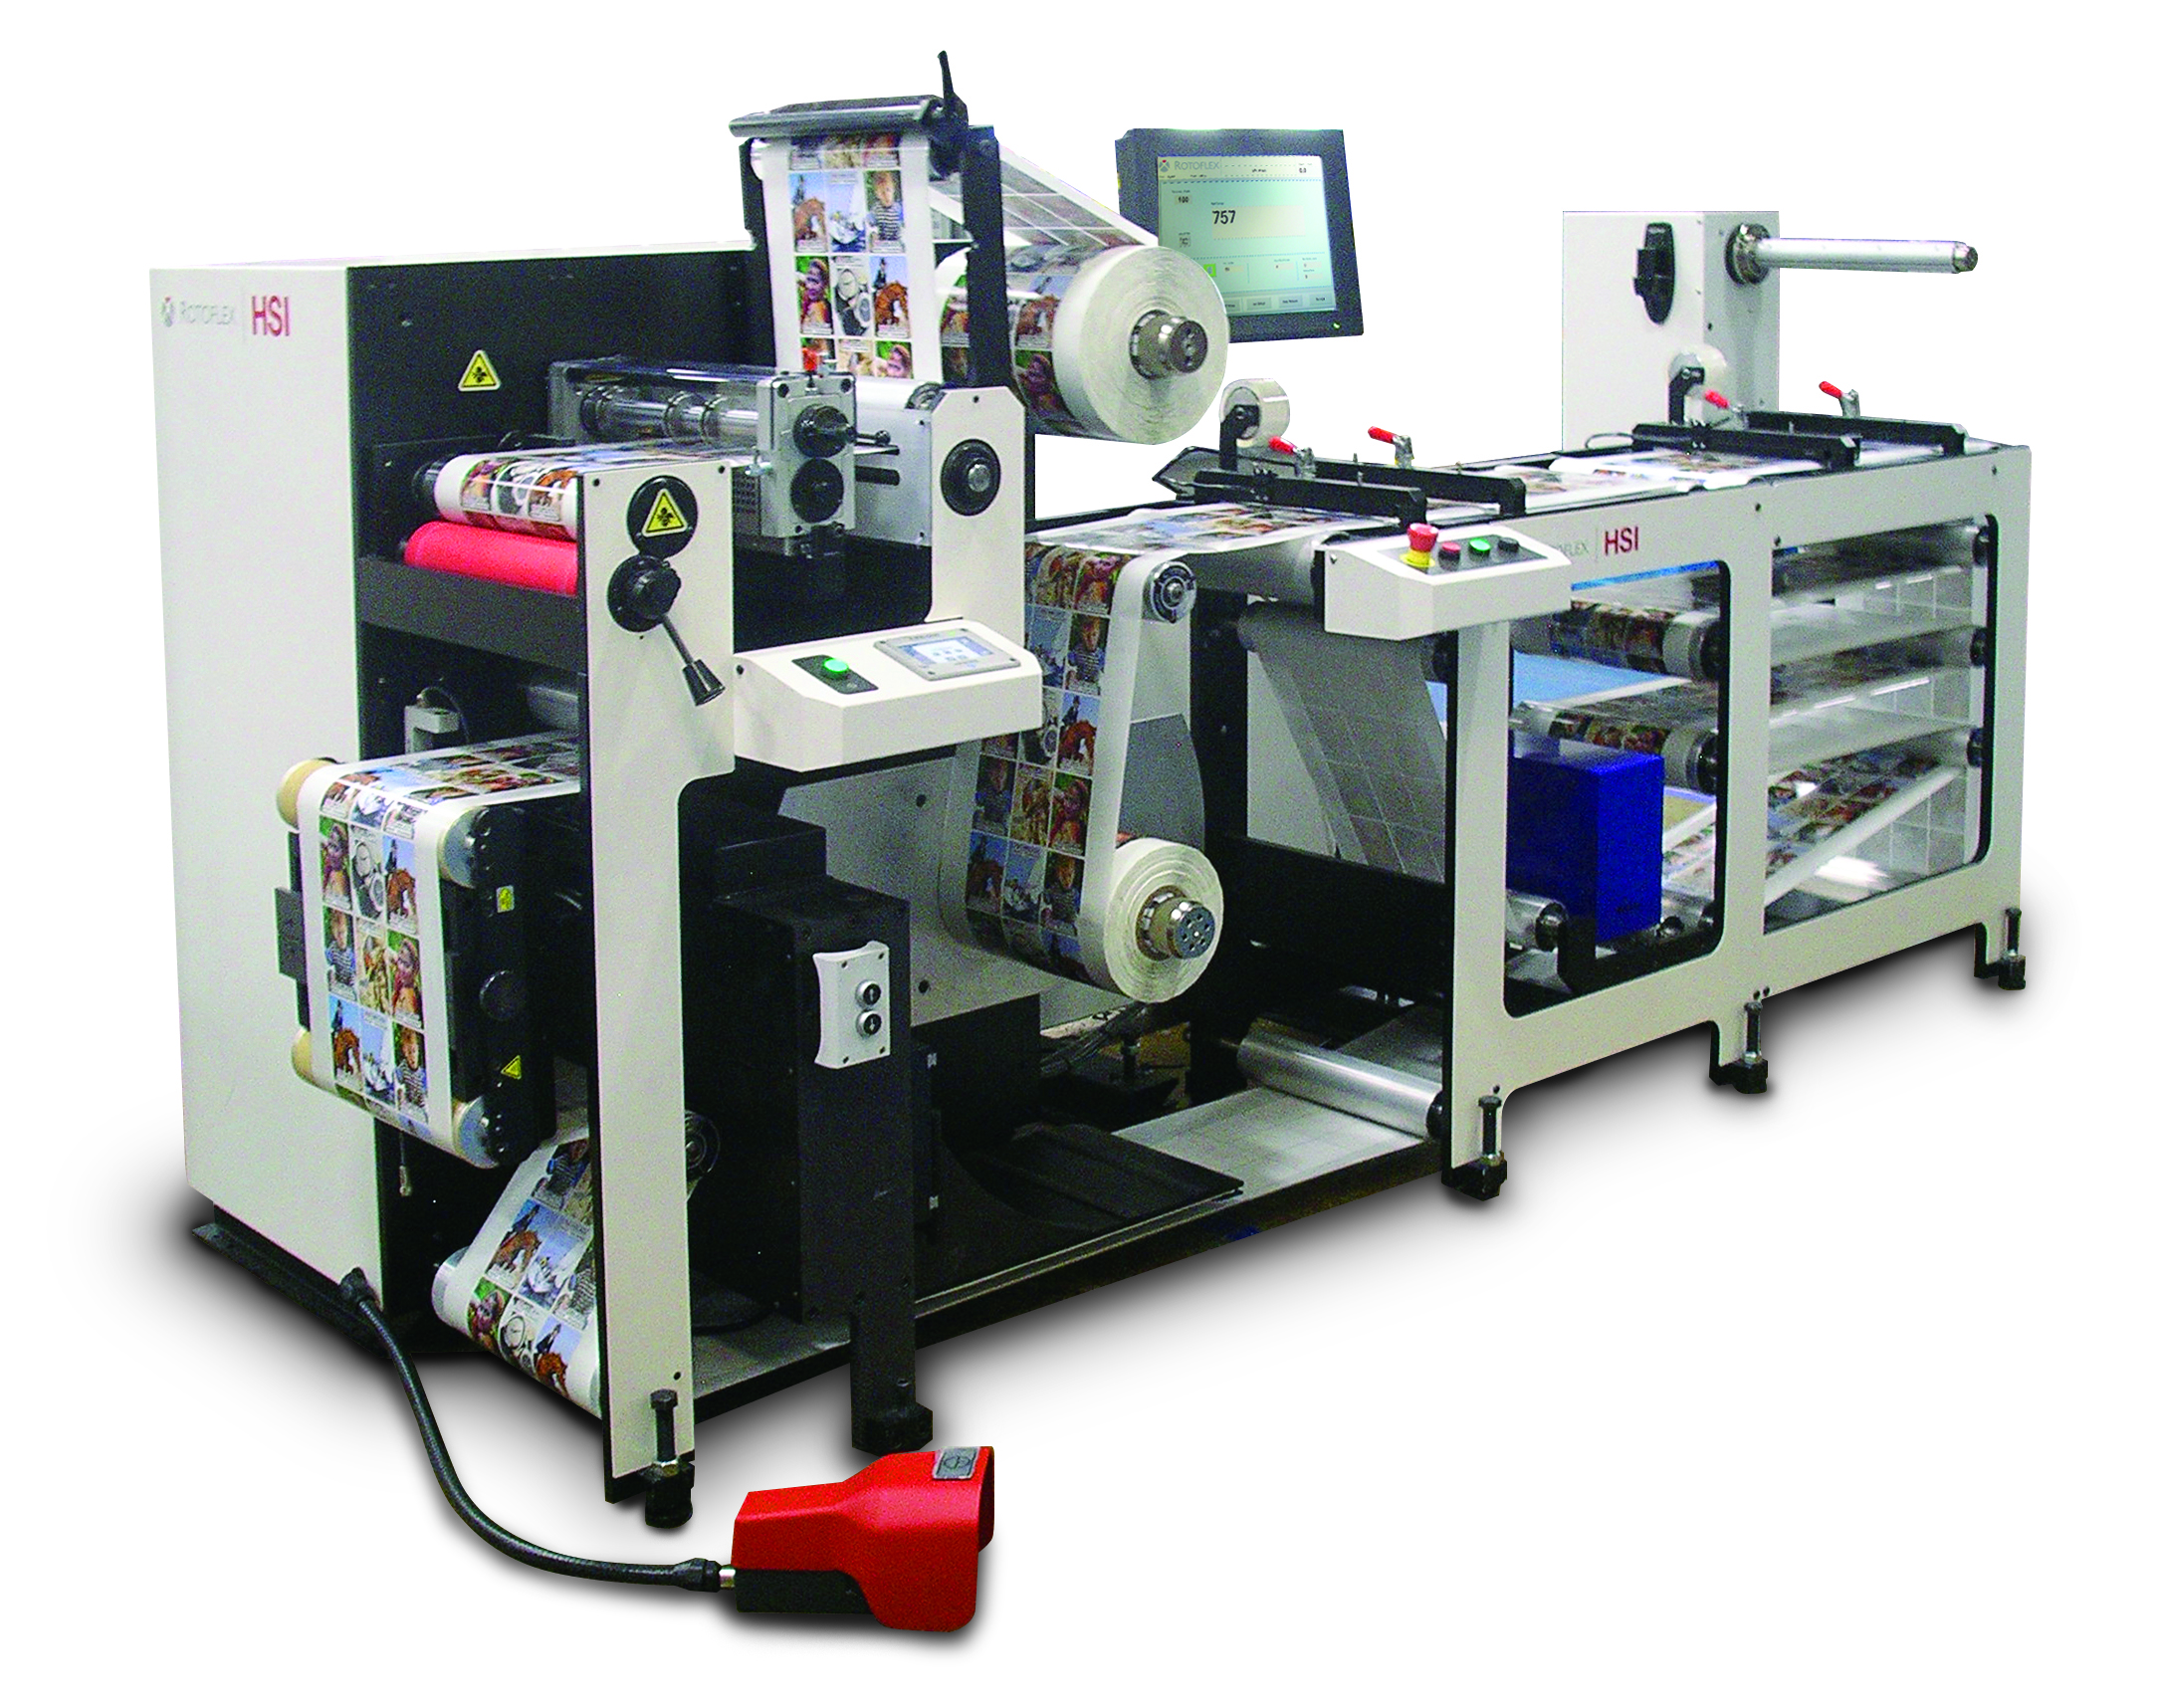 Rotoflex HSI Debut at Labelexpo Europe